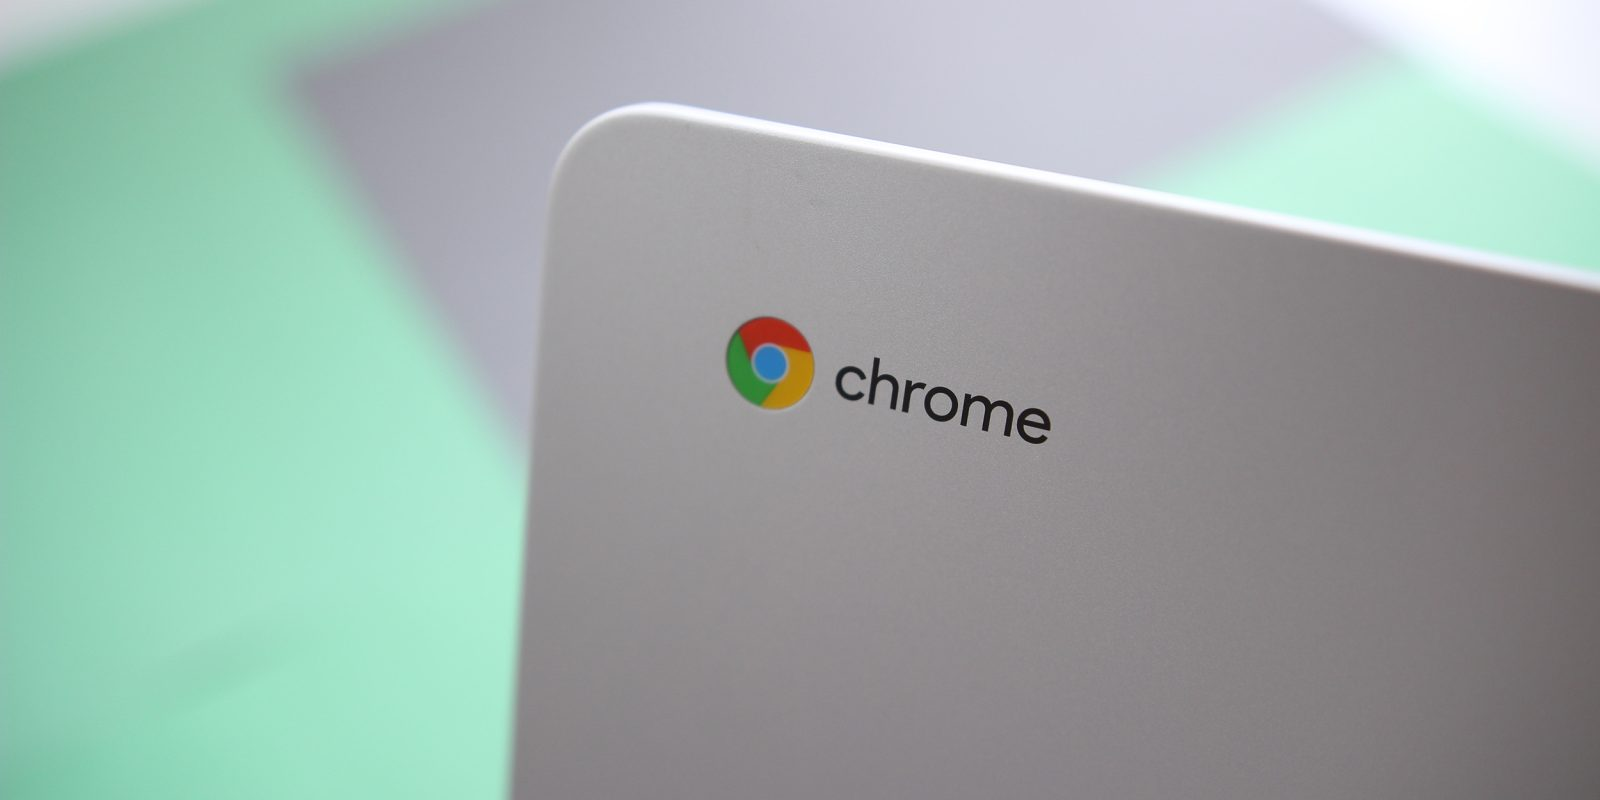 which operating system do you think is better for budget laptops chrome os or windows 10 s poll